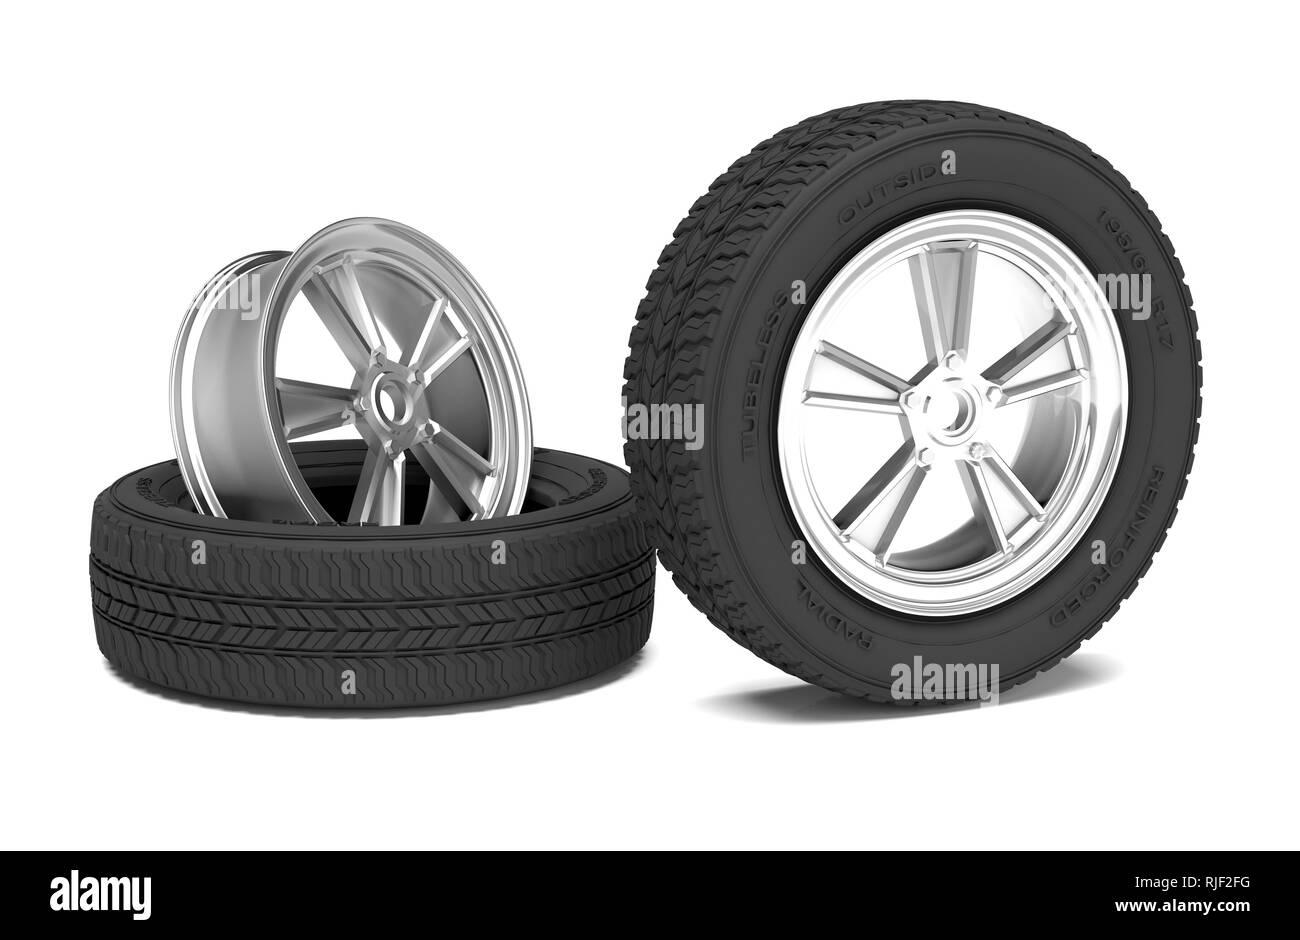 Car alloy wheel and tyre on white background. 3D illustration - Stock Image